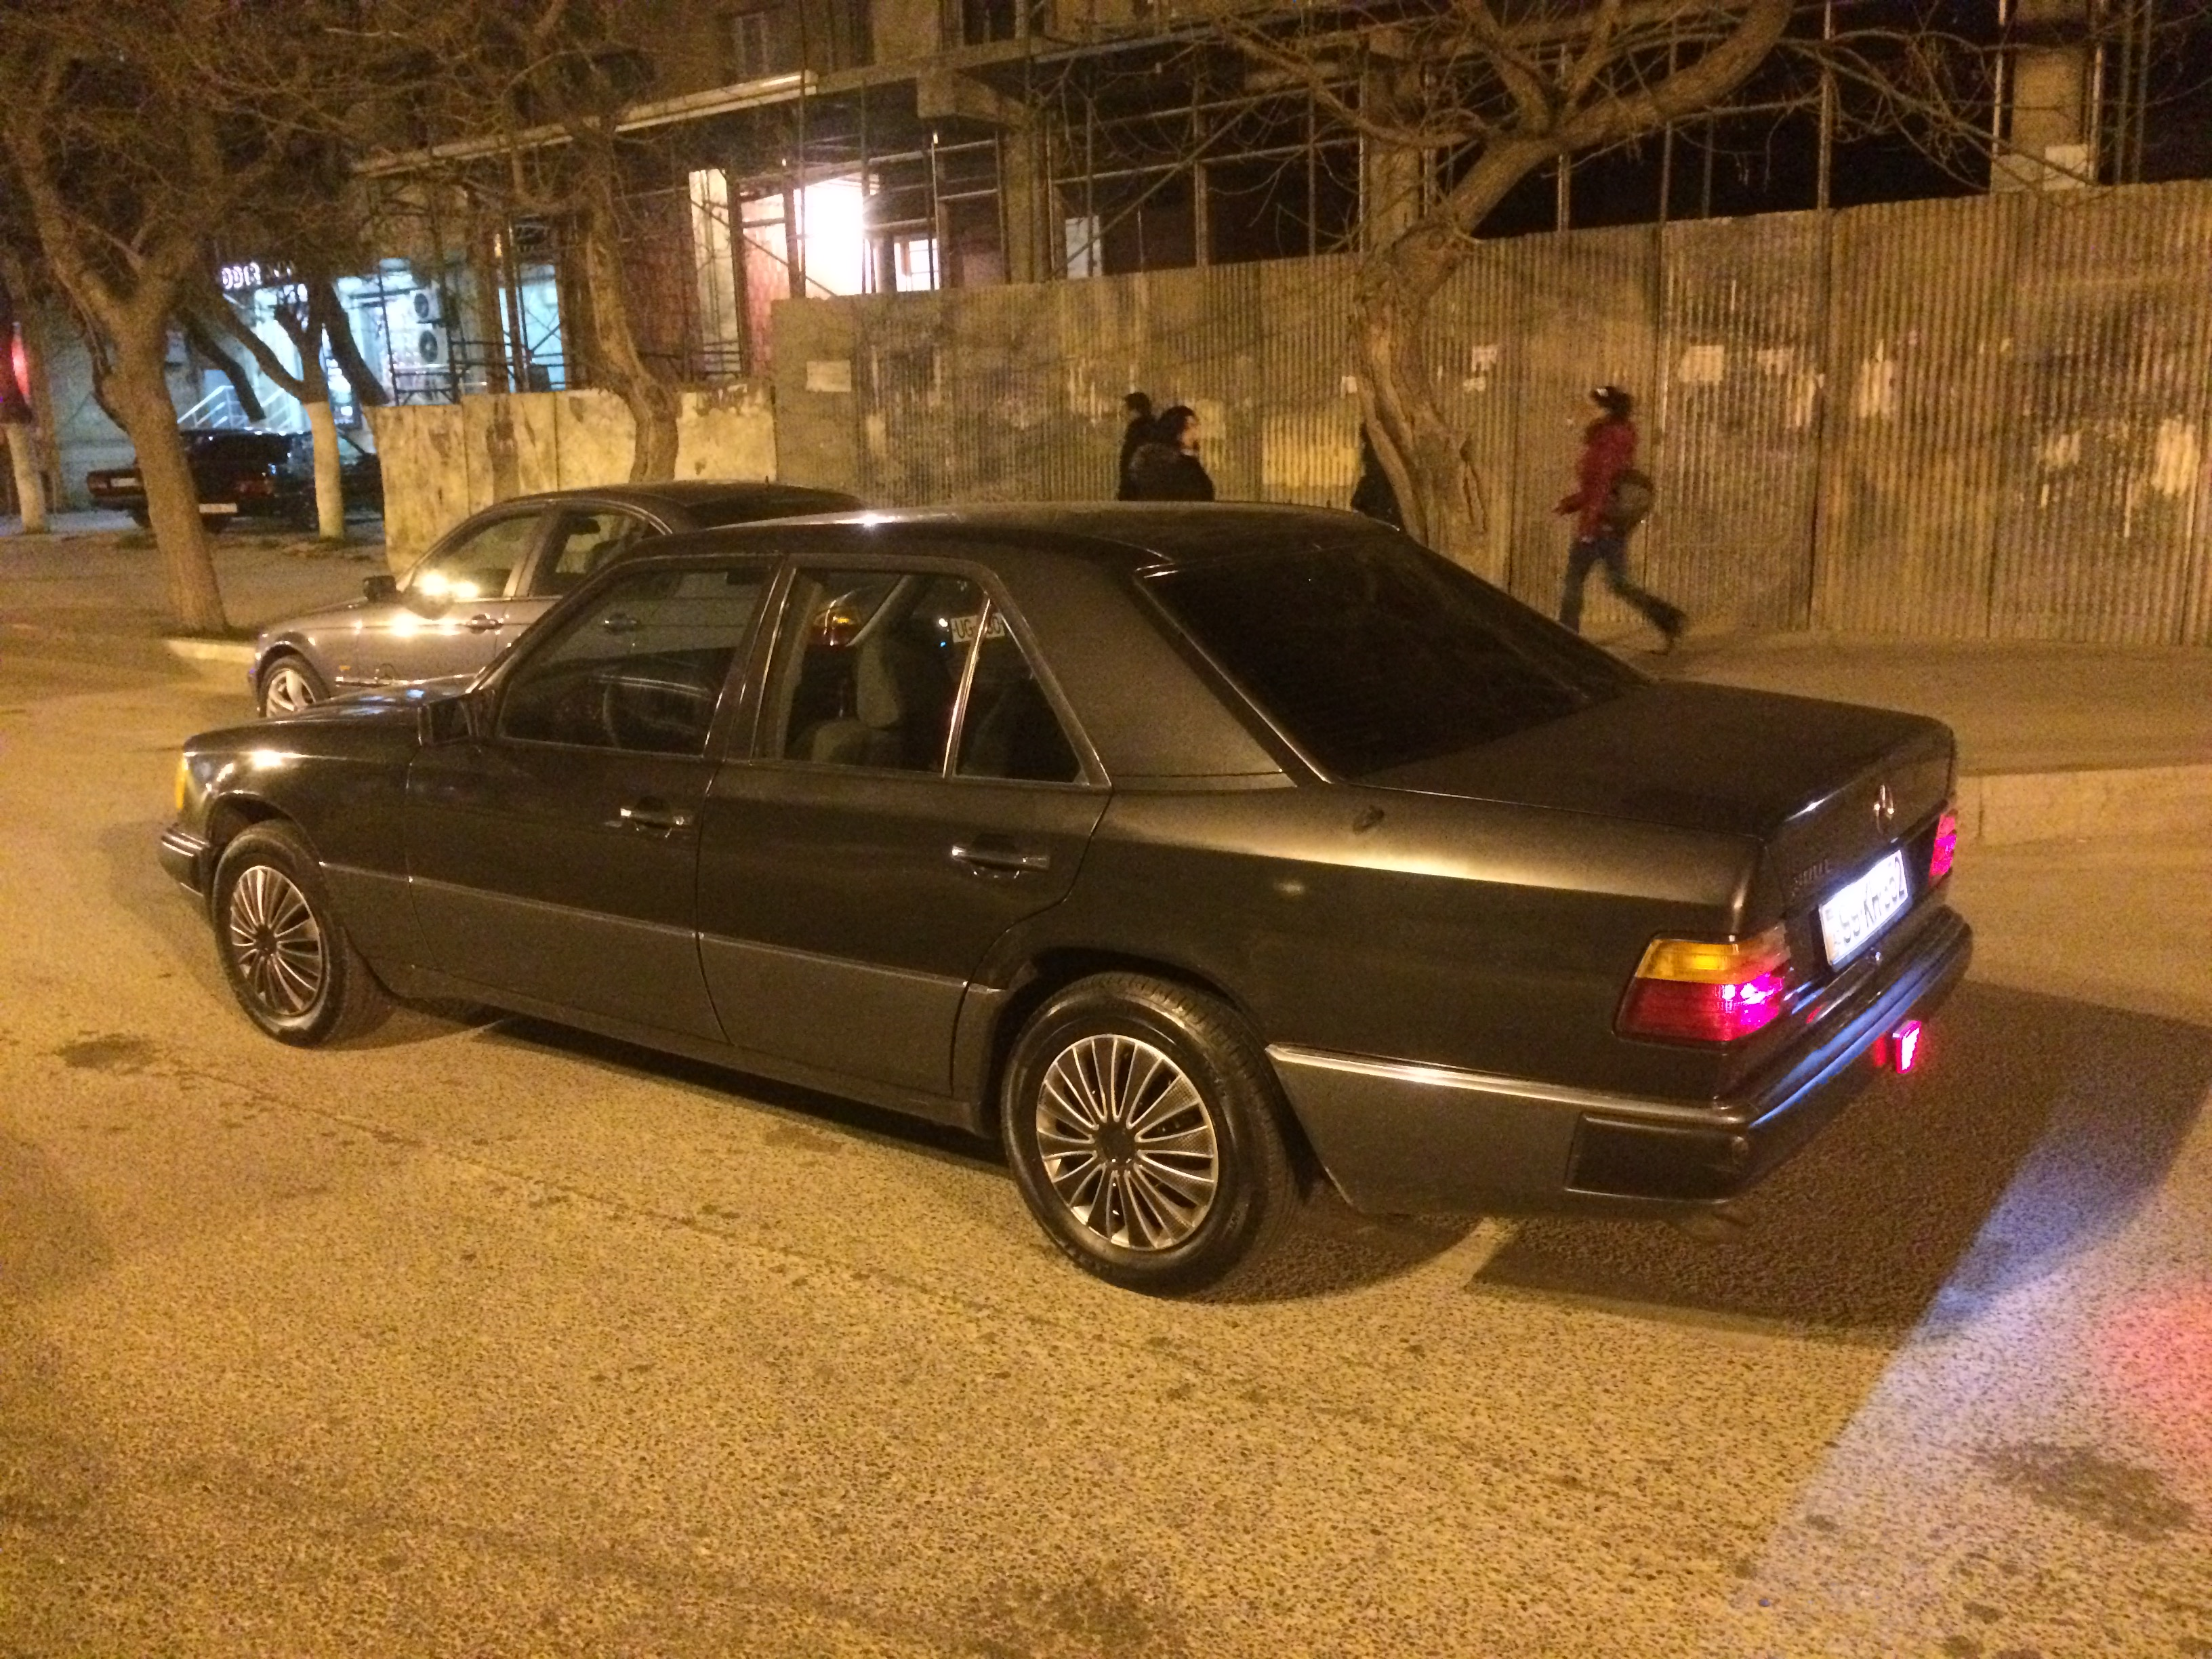 Mercedes-Benz E 300 3.0(lt) 1991 Second hand  $3400